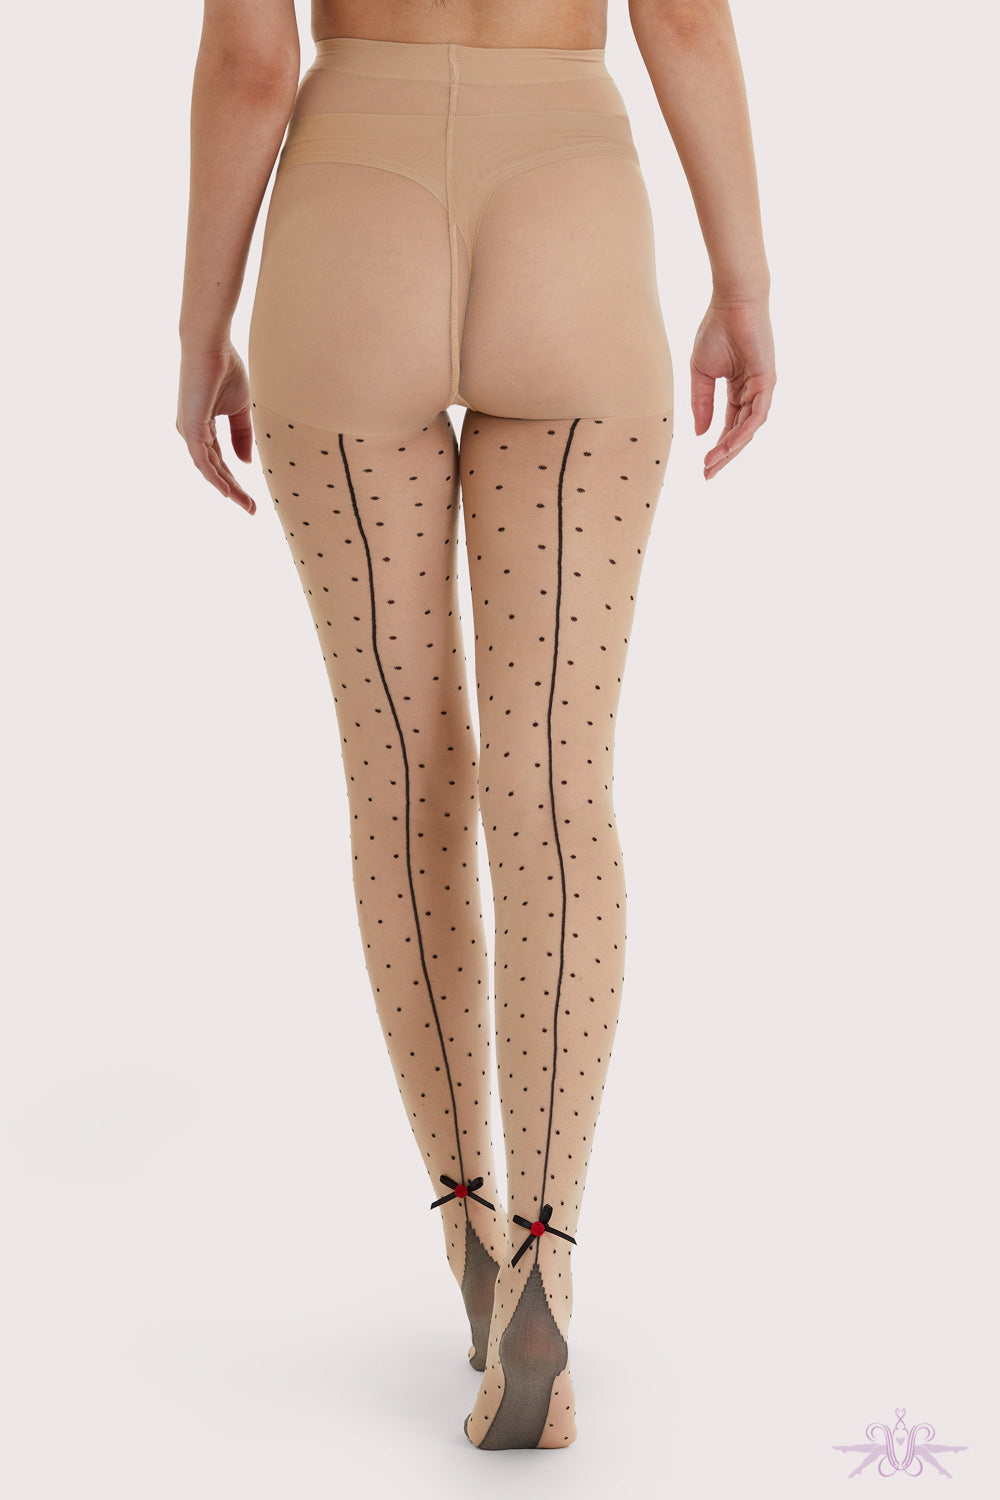 Playful Promises Dotty Seamed Tights with Bow